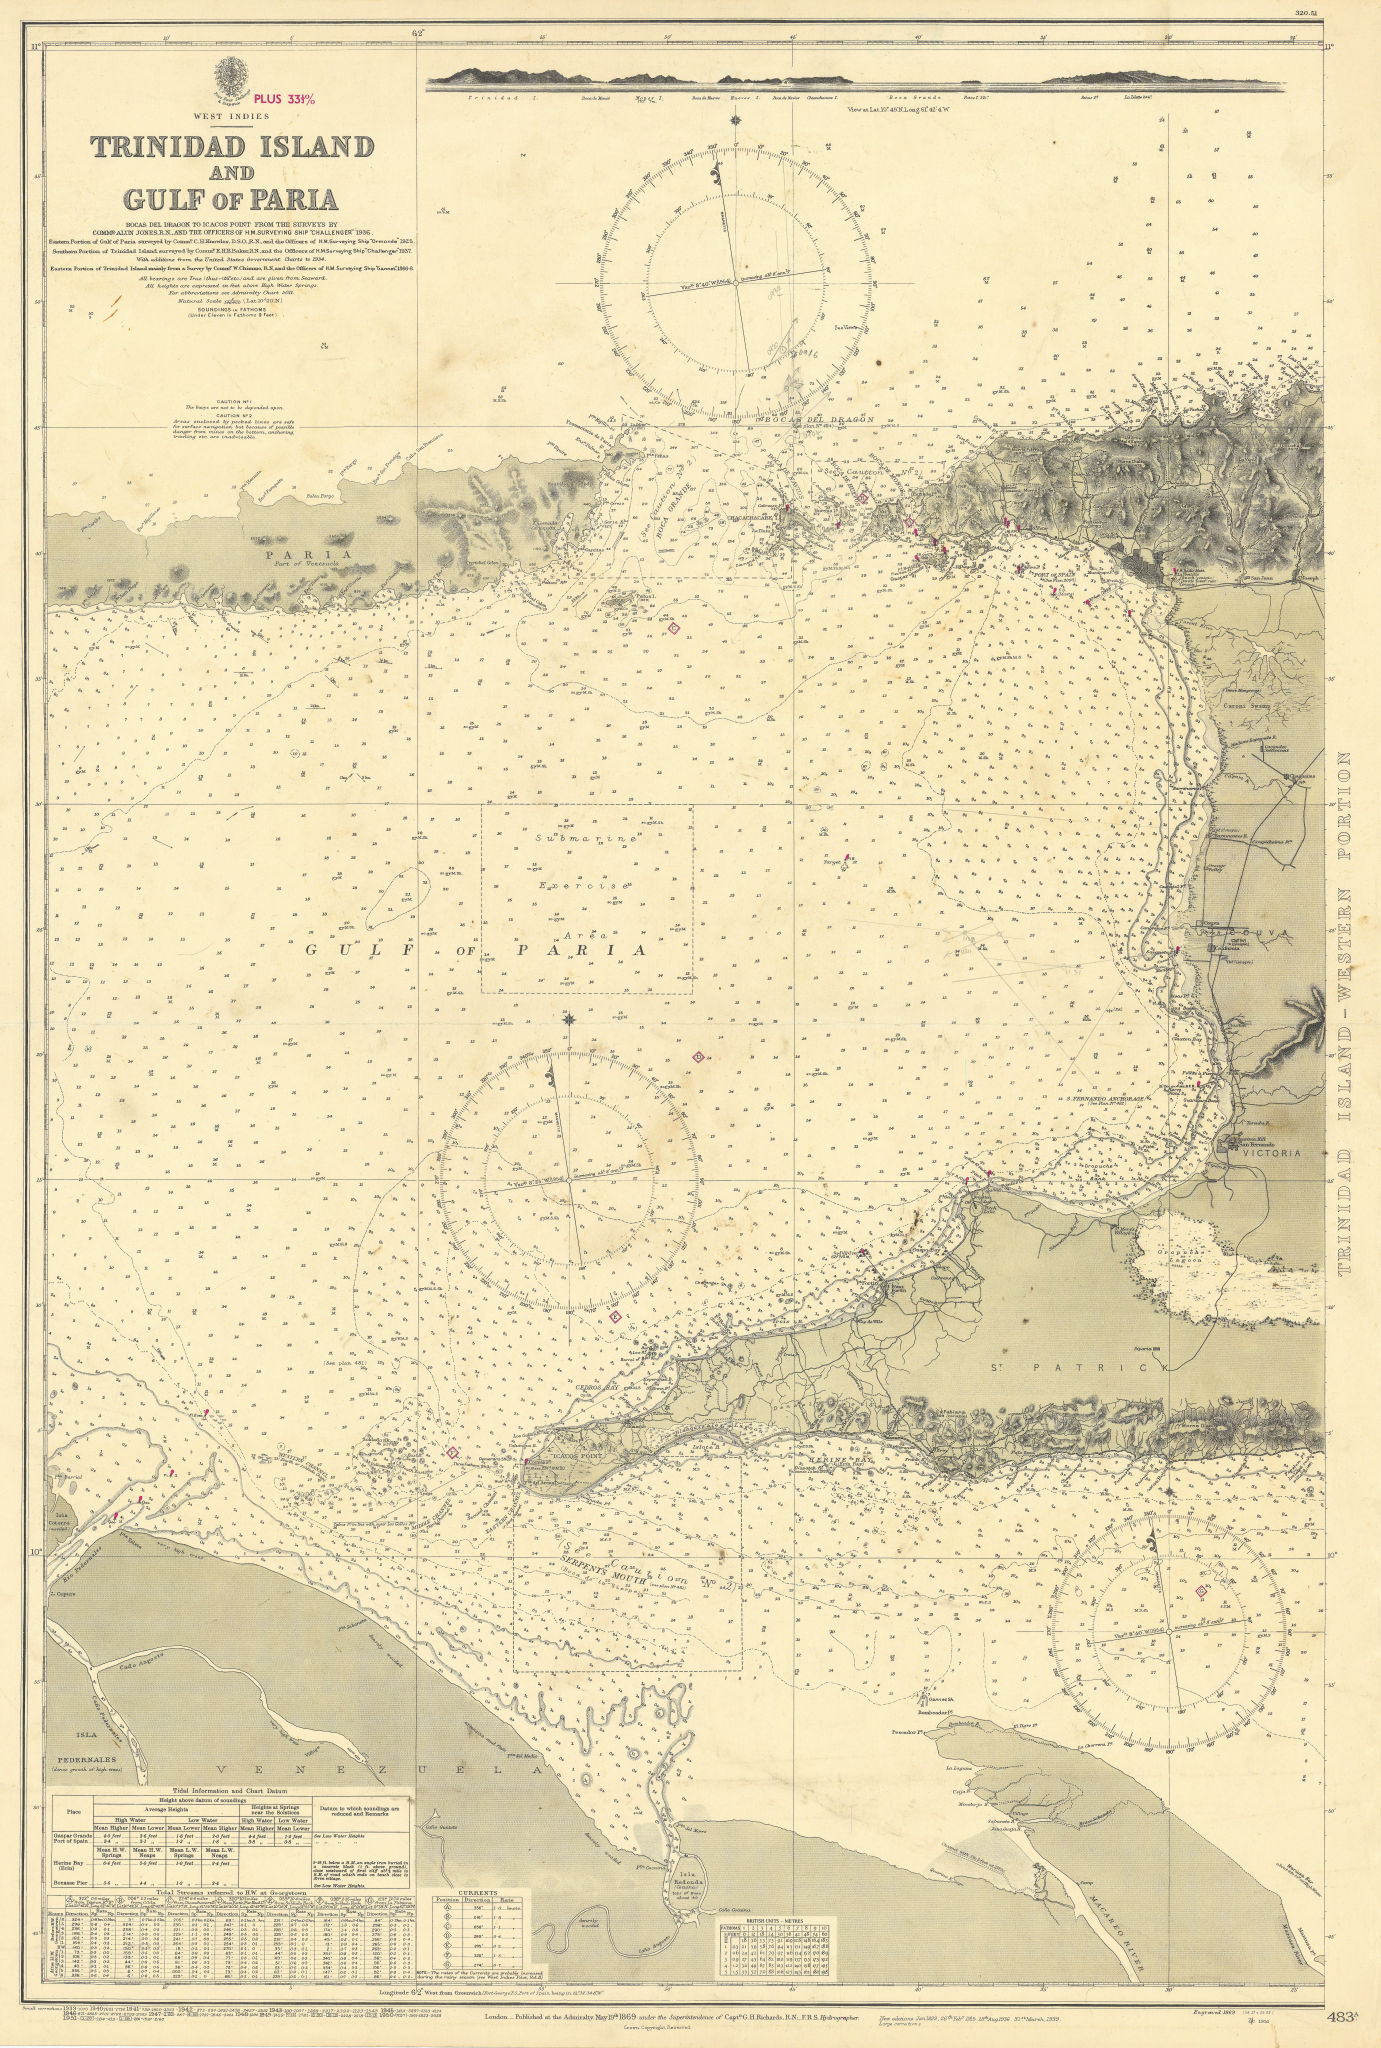 Trinidad west part Gulf of Paria West Indies ADMIRALTY sea chart 1869 (1951) map